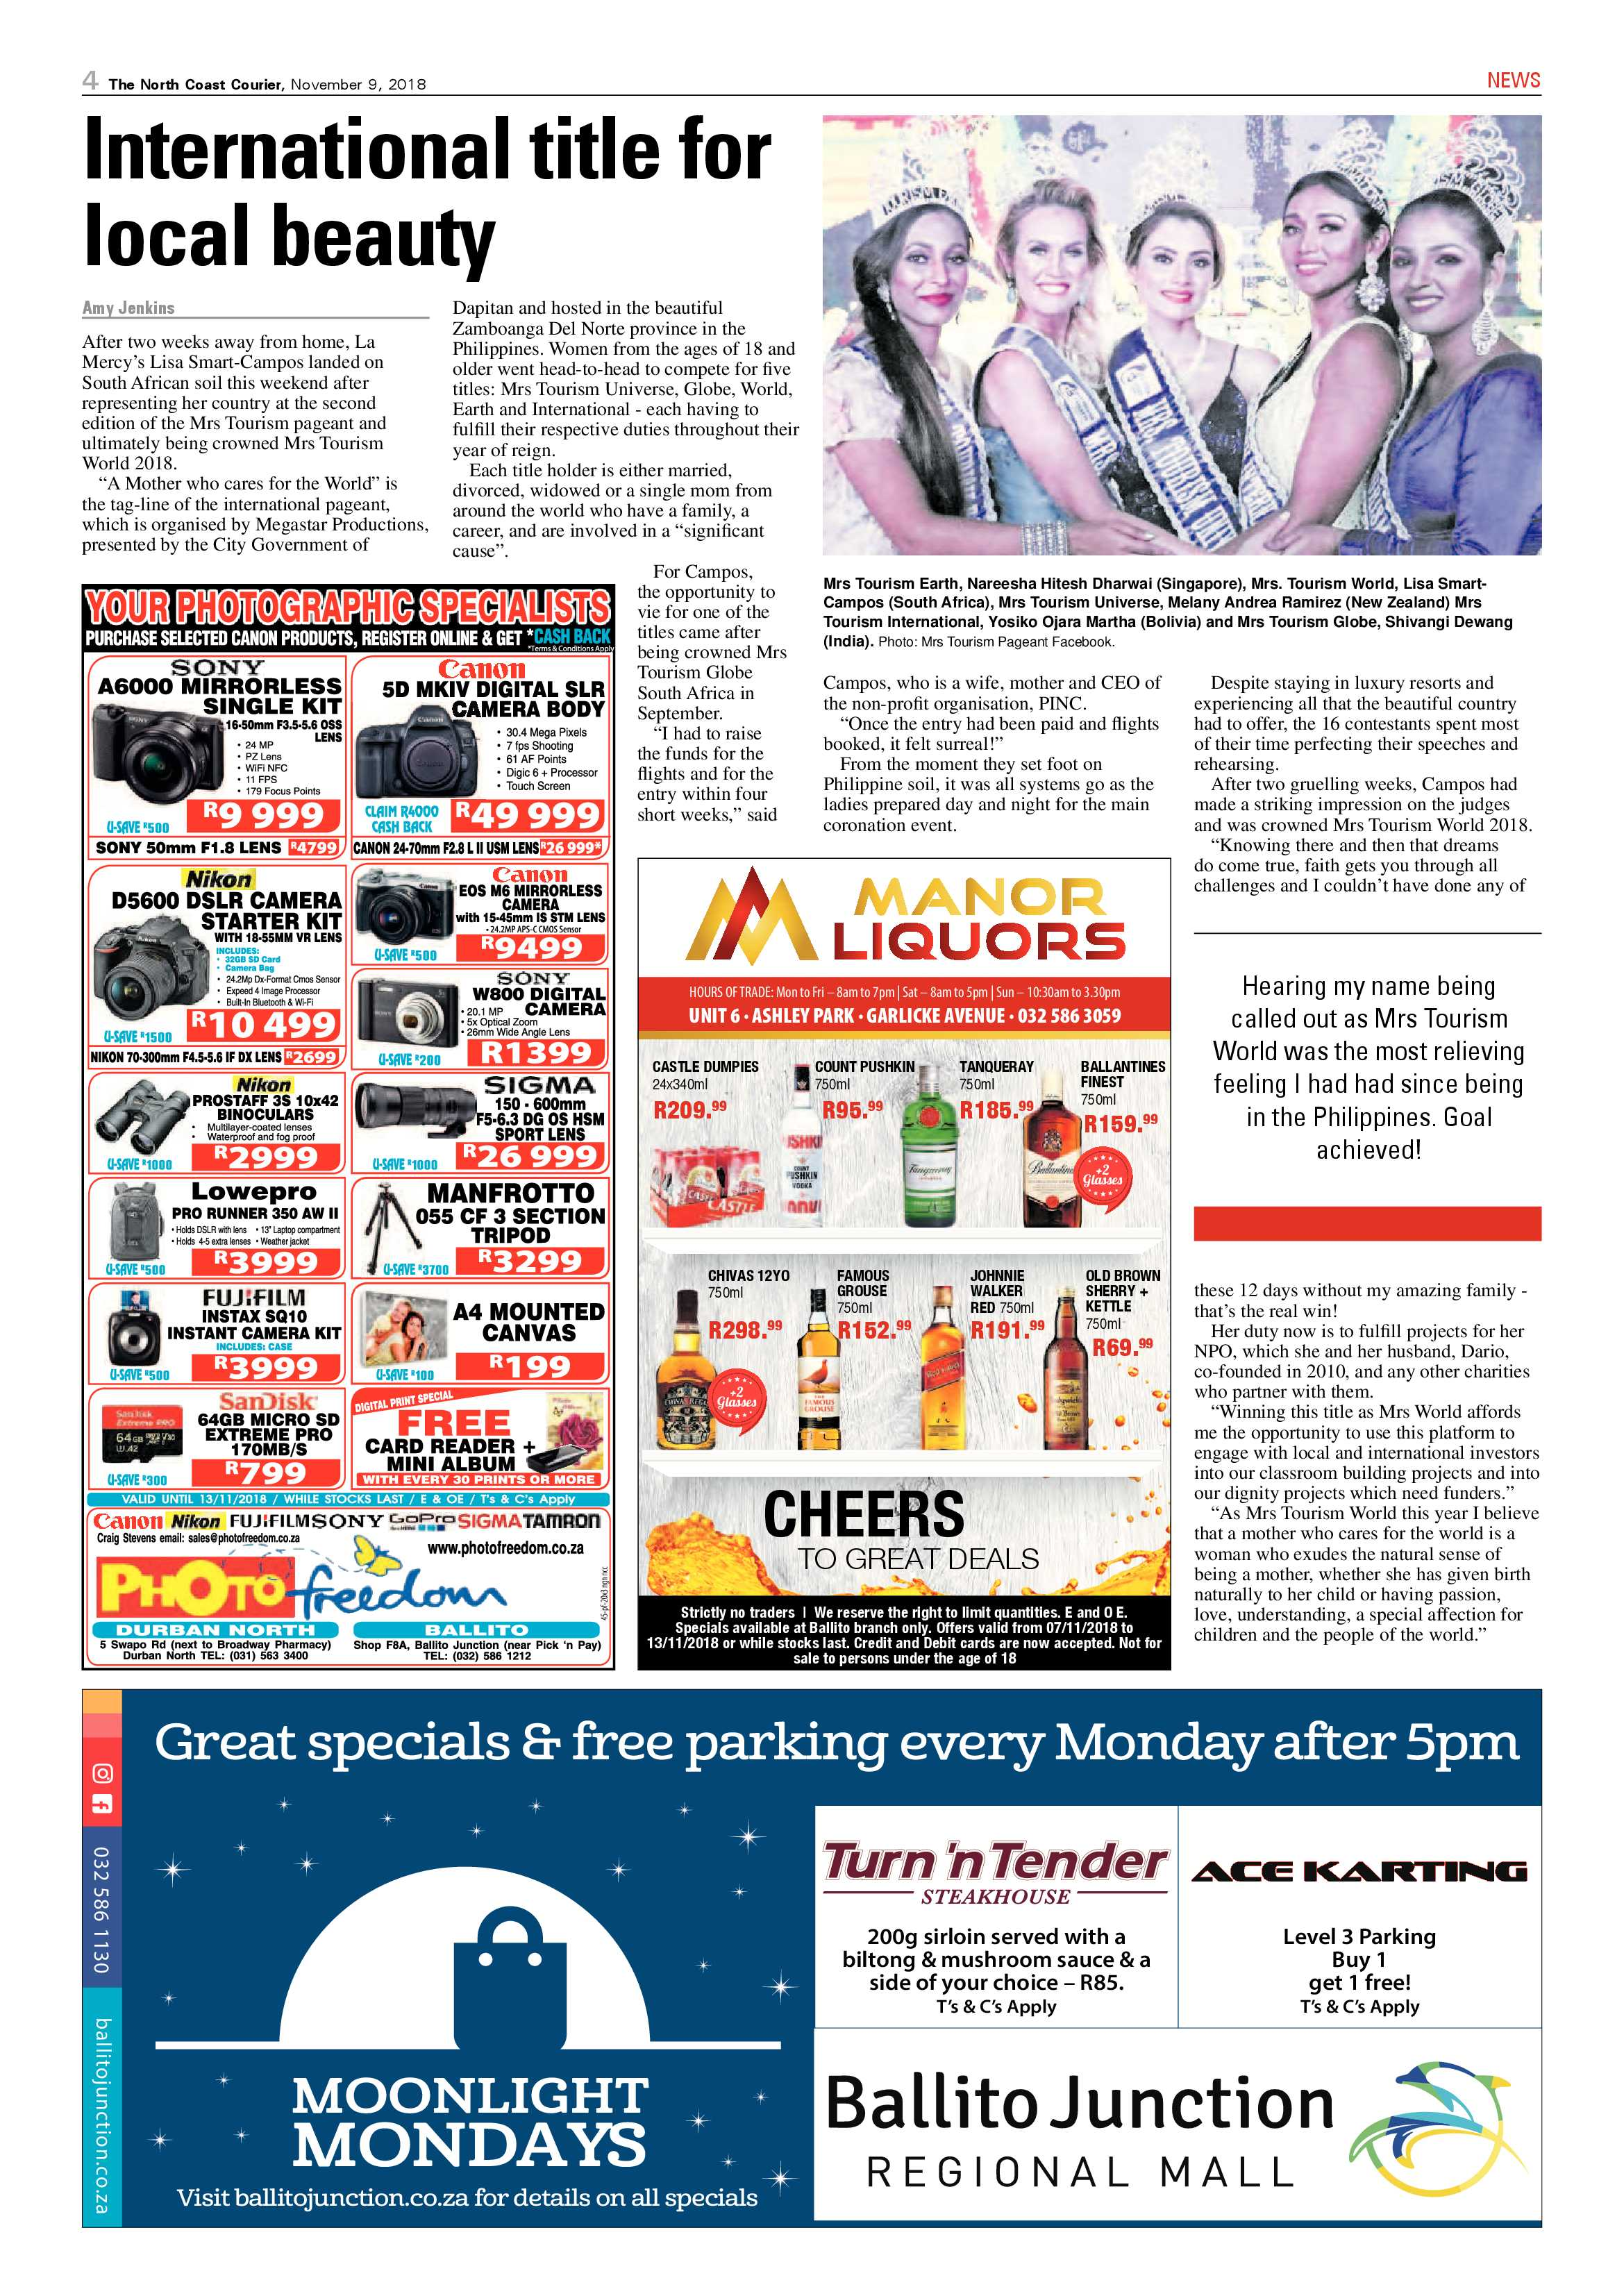 north-coast-courier-09-november-2018-epapers-page-4